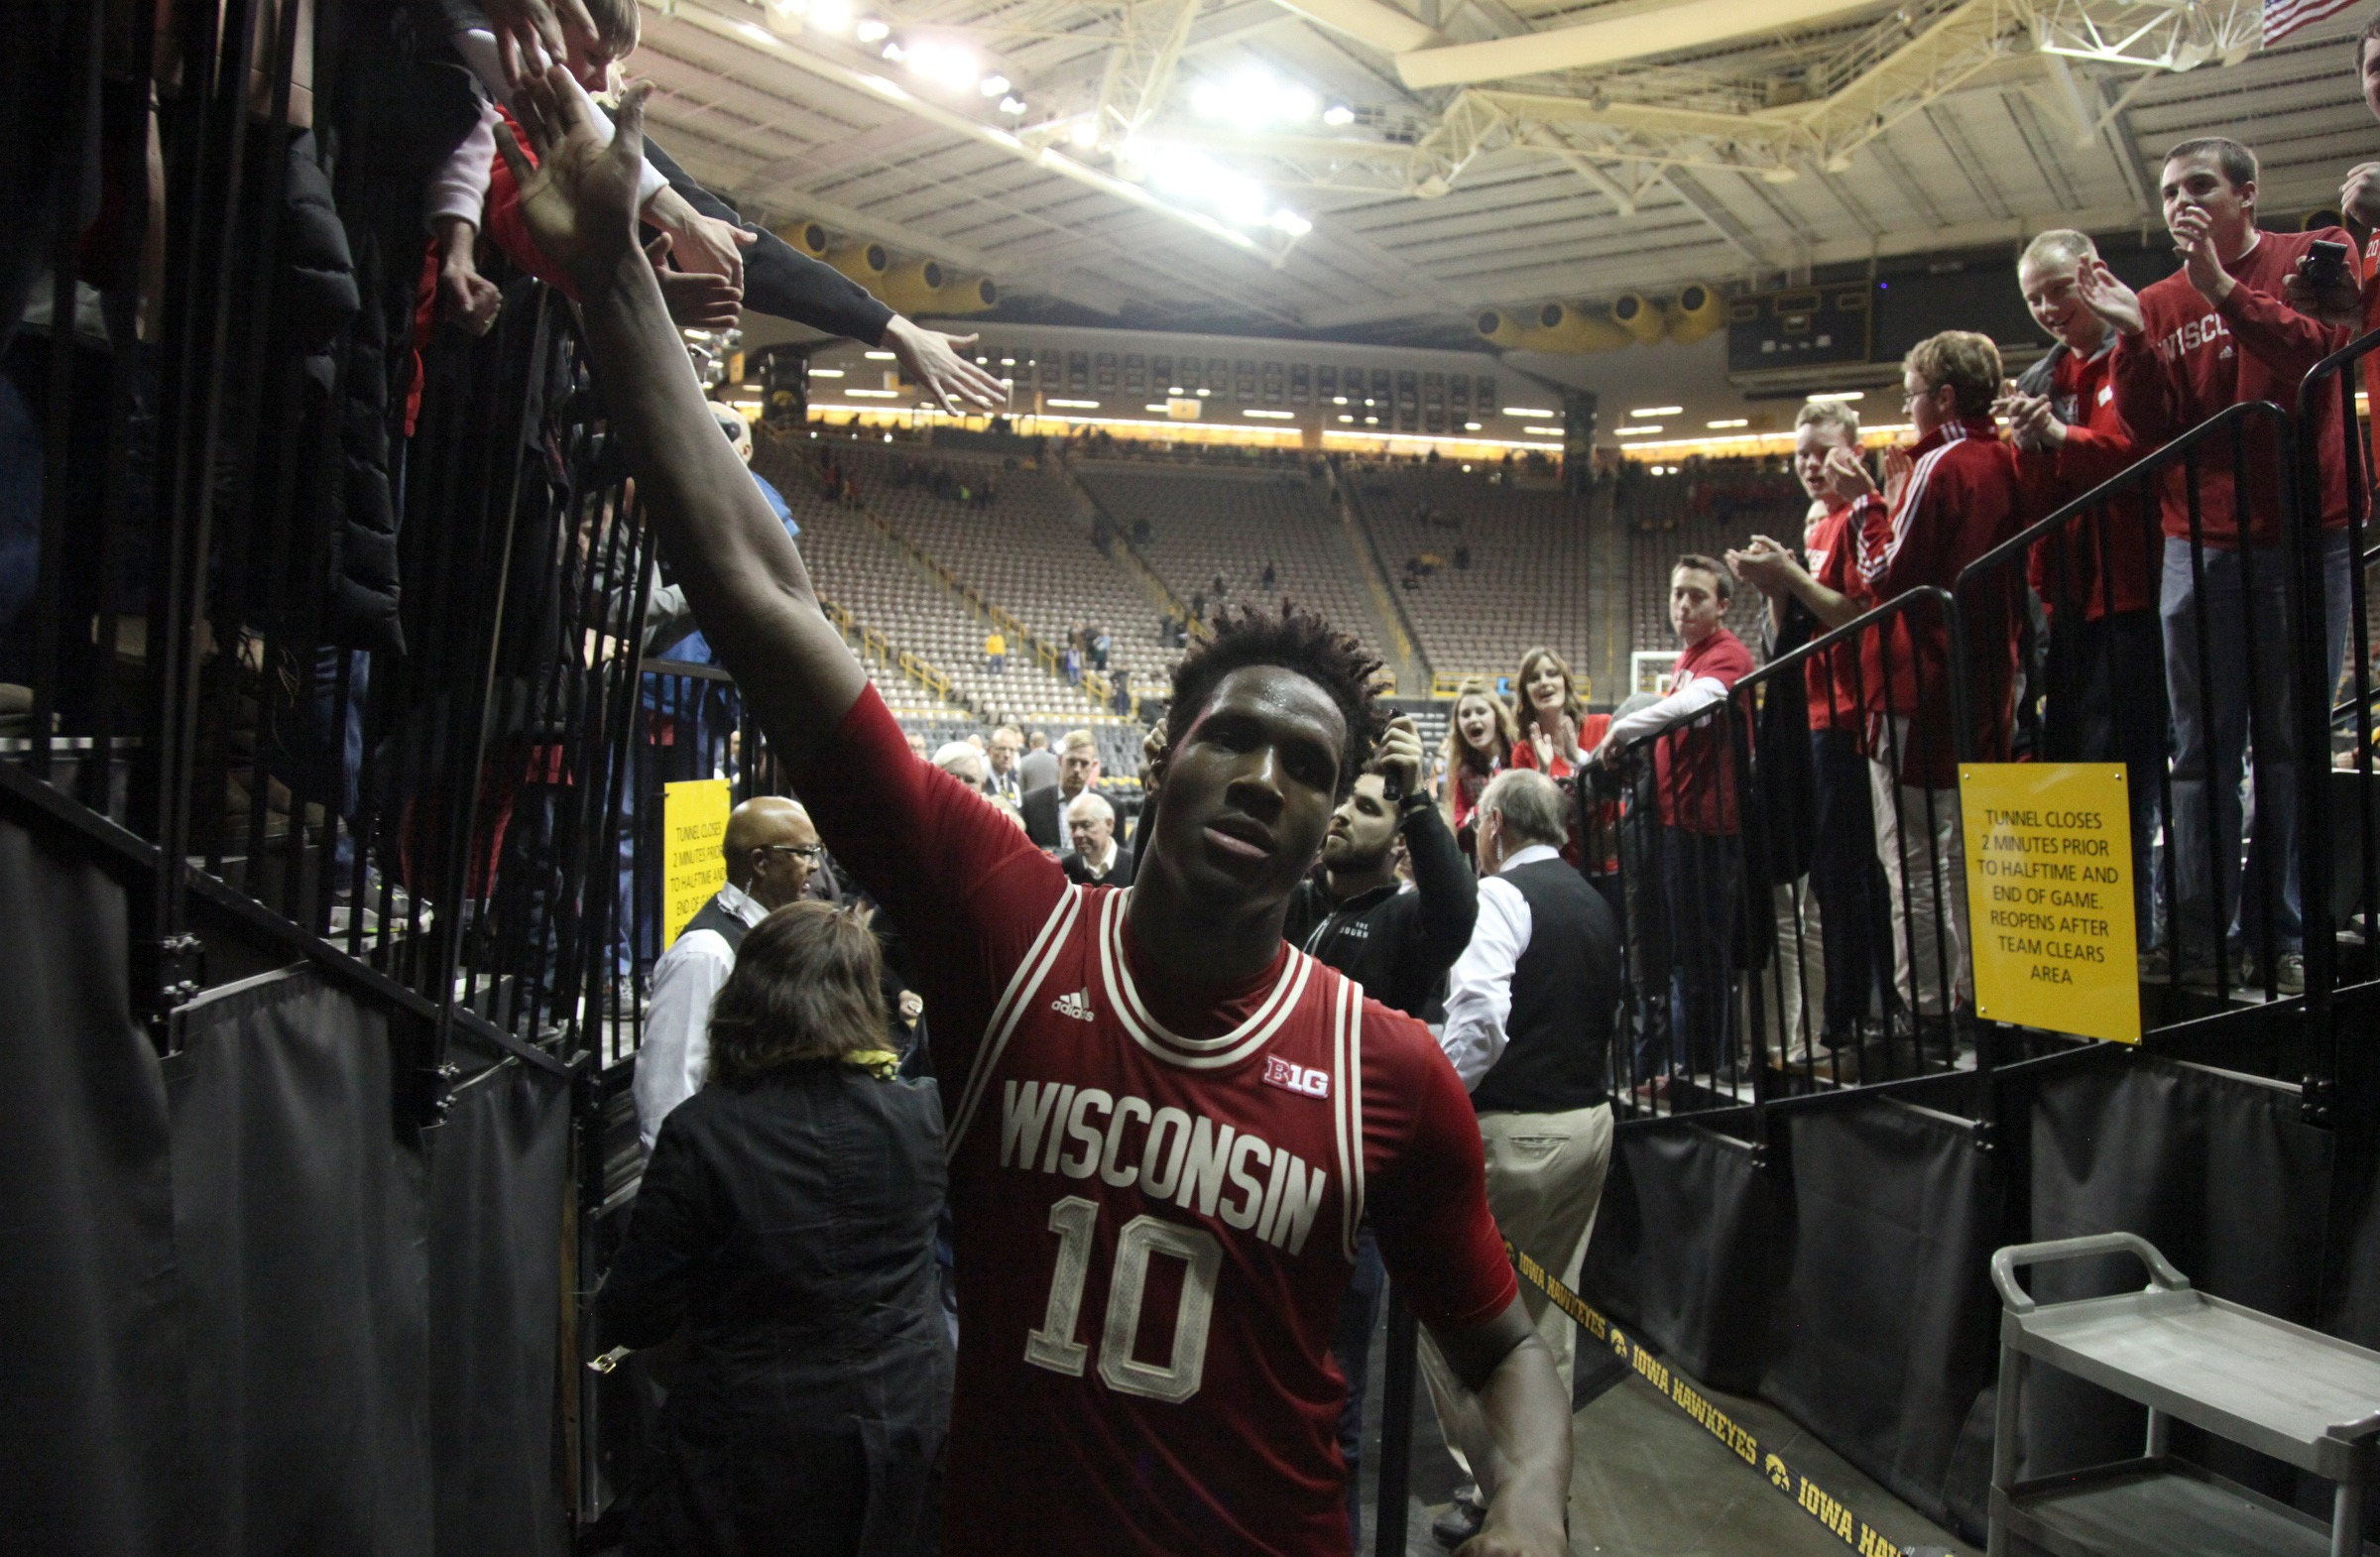 IOWA CITY, IA - FEBRUARY 24:   Forward Nigel Hayes #10 of the Wisconsin Badgers walks off the court after they defeating the Iowa Hawkeyes on February 24, 2016 at Carver-Hawkeye Arena, in Iowa City, Iowa.  (Photo by Matthew Holst/Getty Images)